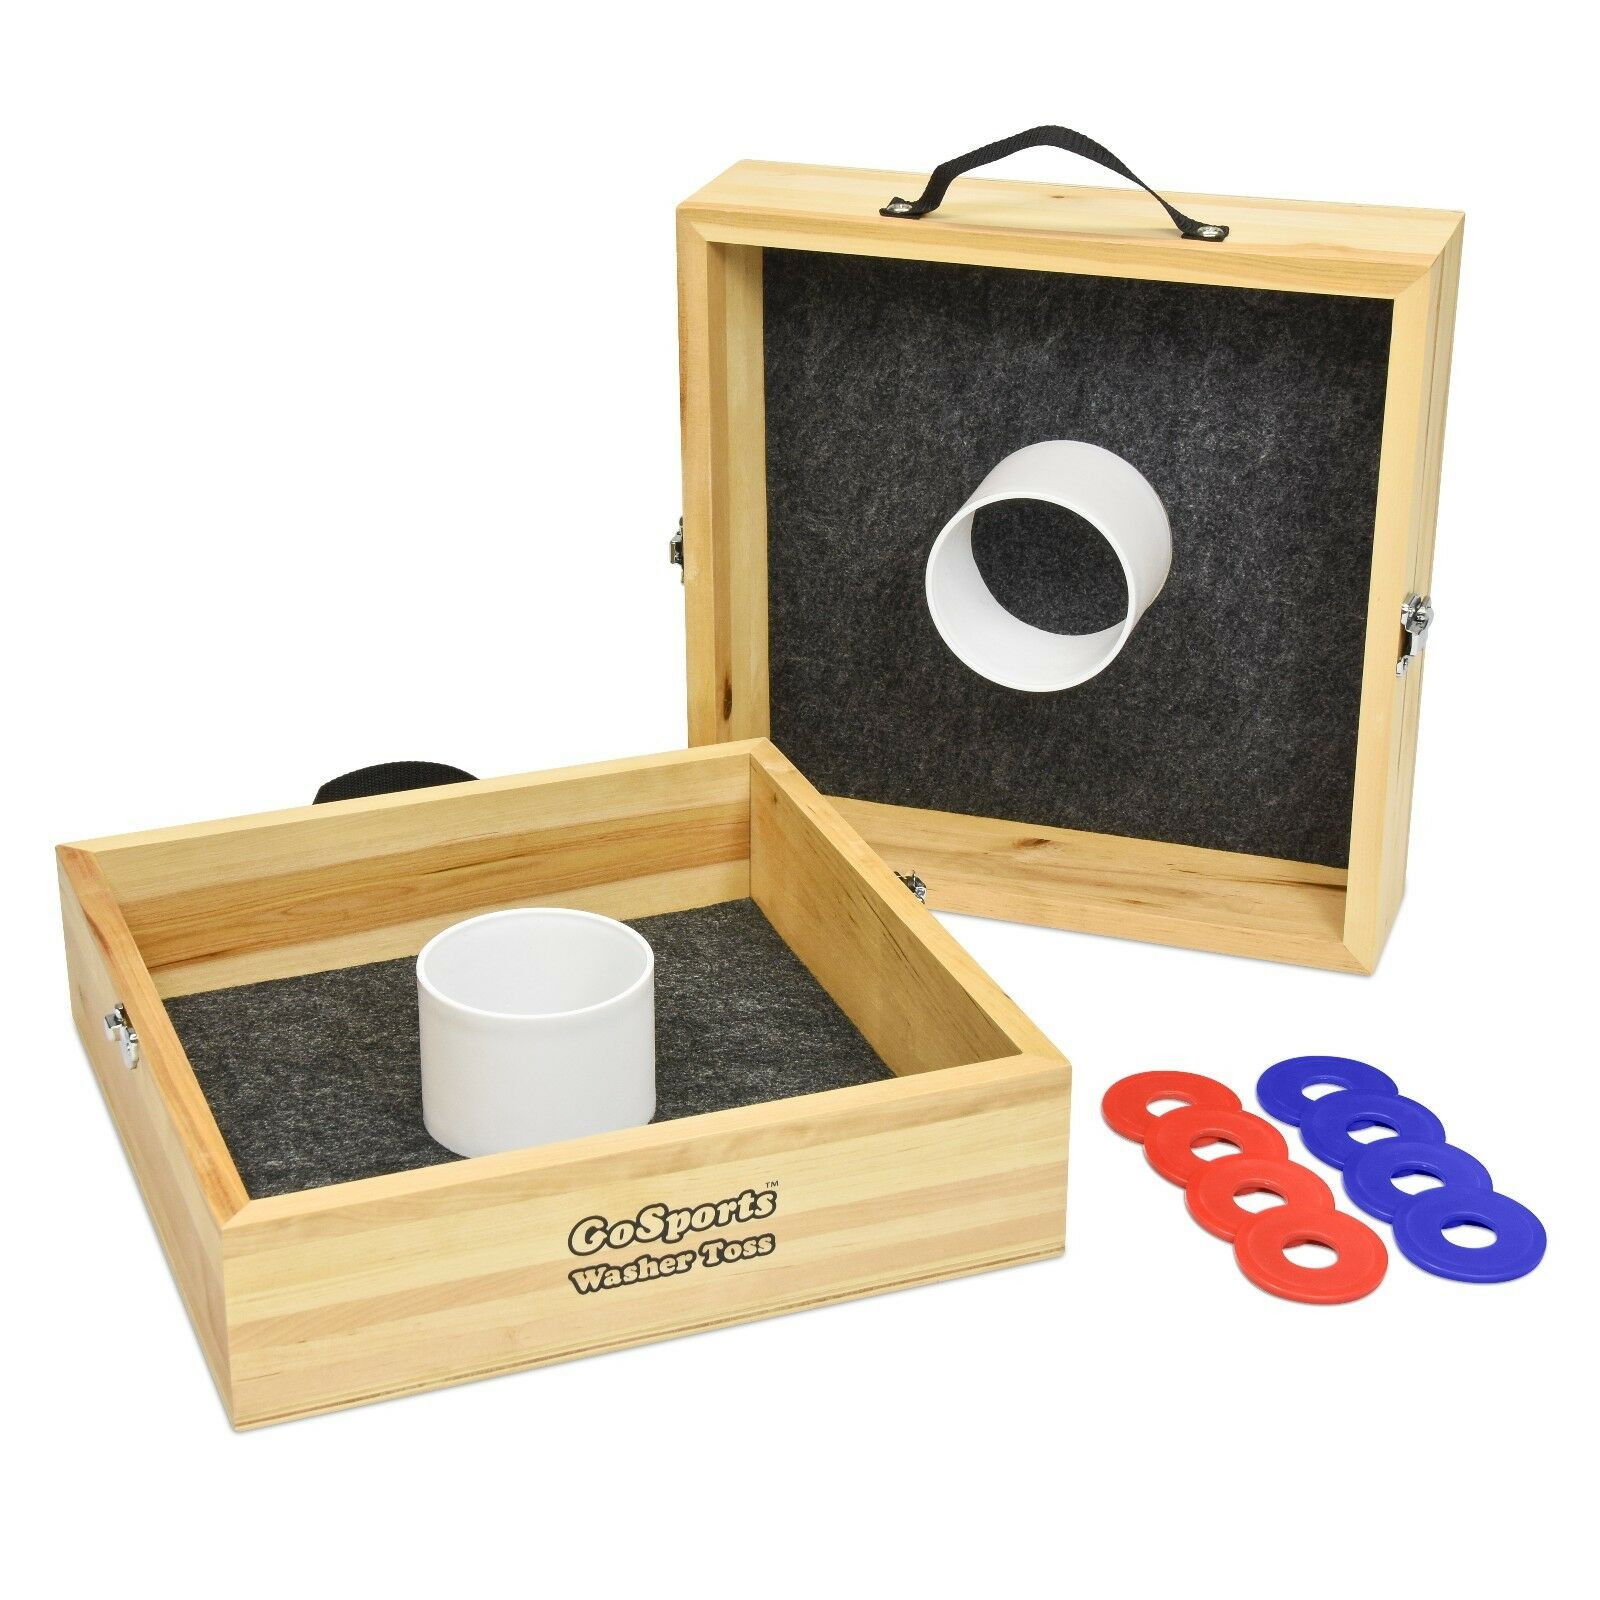 Hand Crafted Wood Washer Toss Game  Classic Tailgating  Game FREE SHIPPING  retail stores